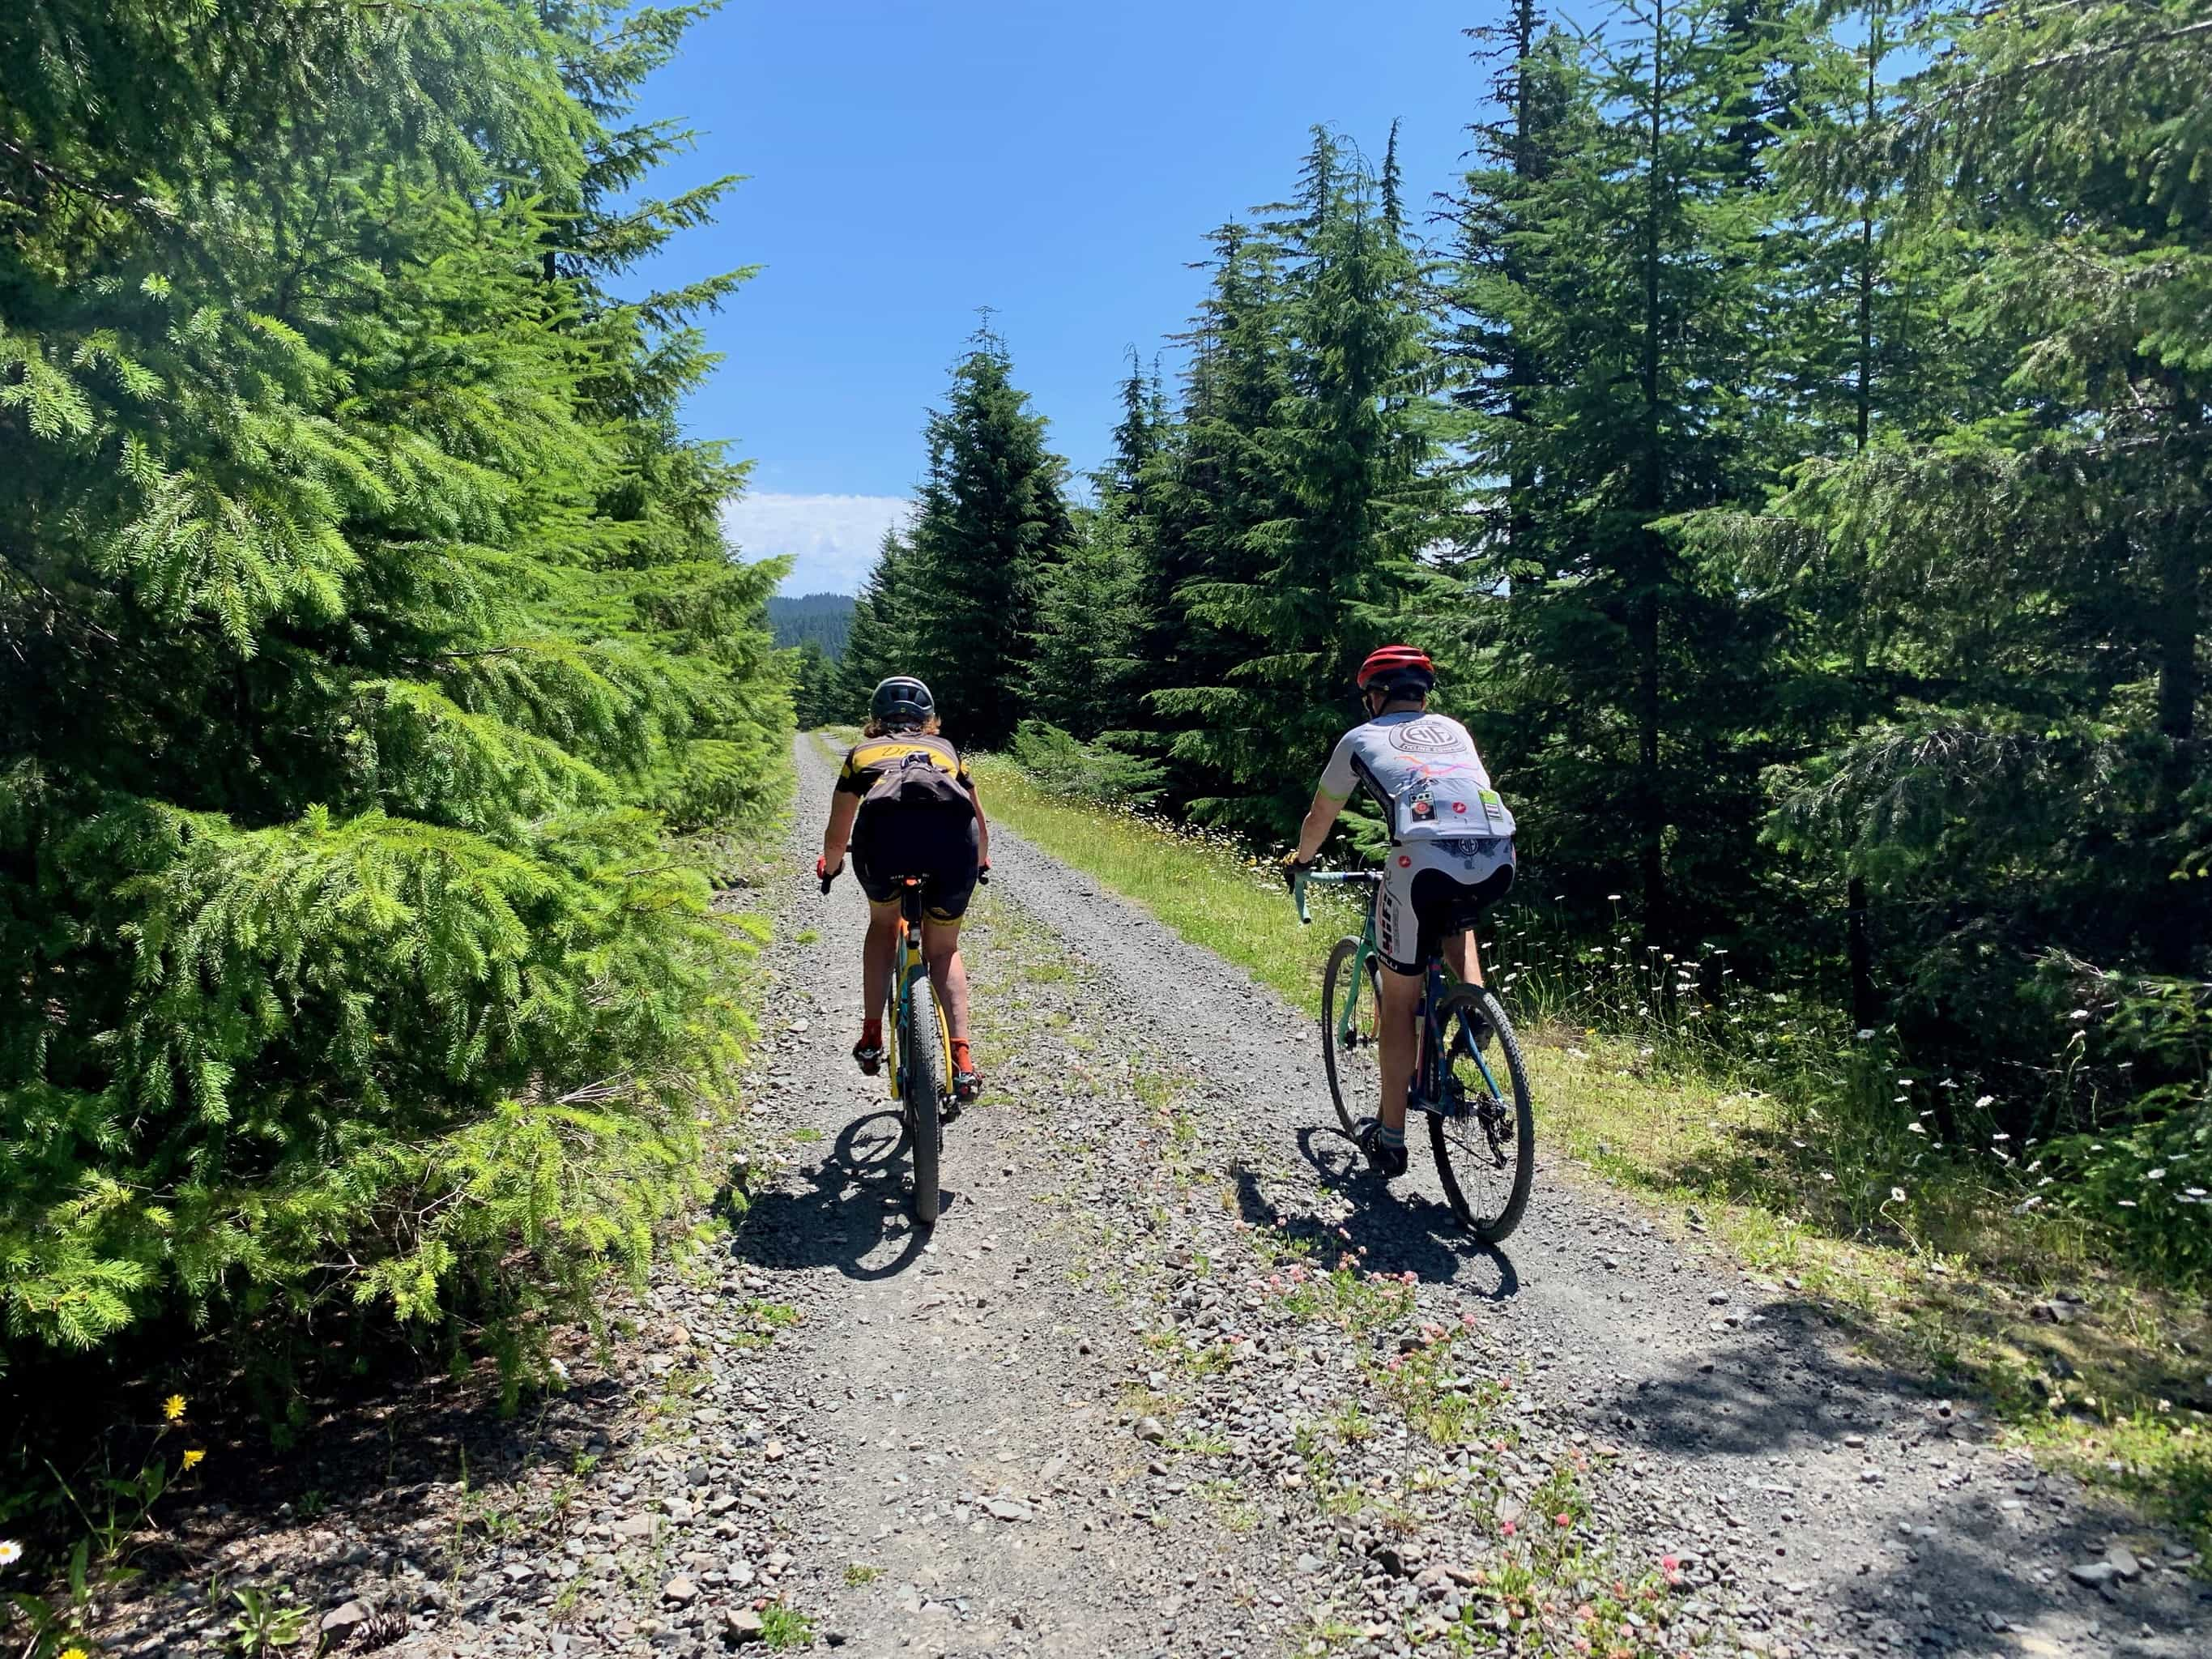 Gravel cyclists on climb of NF-311 near Bare Mountain in Gifford Pinchot National Forest.